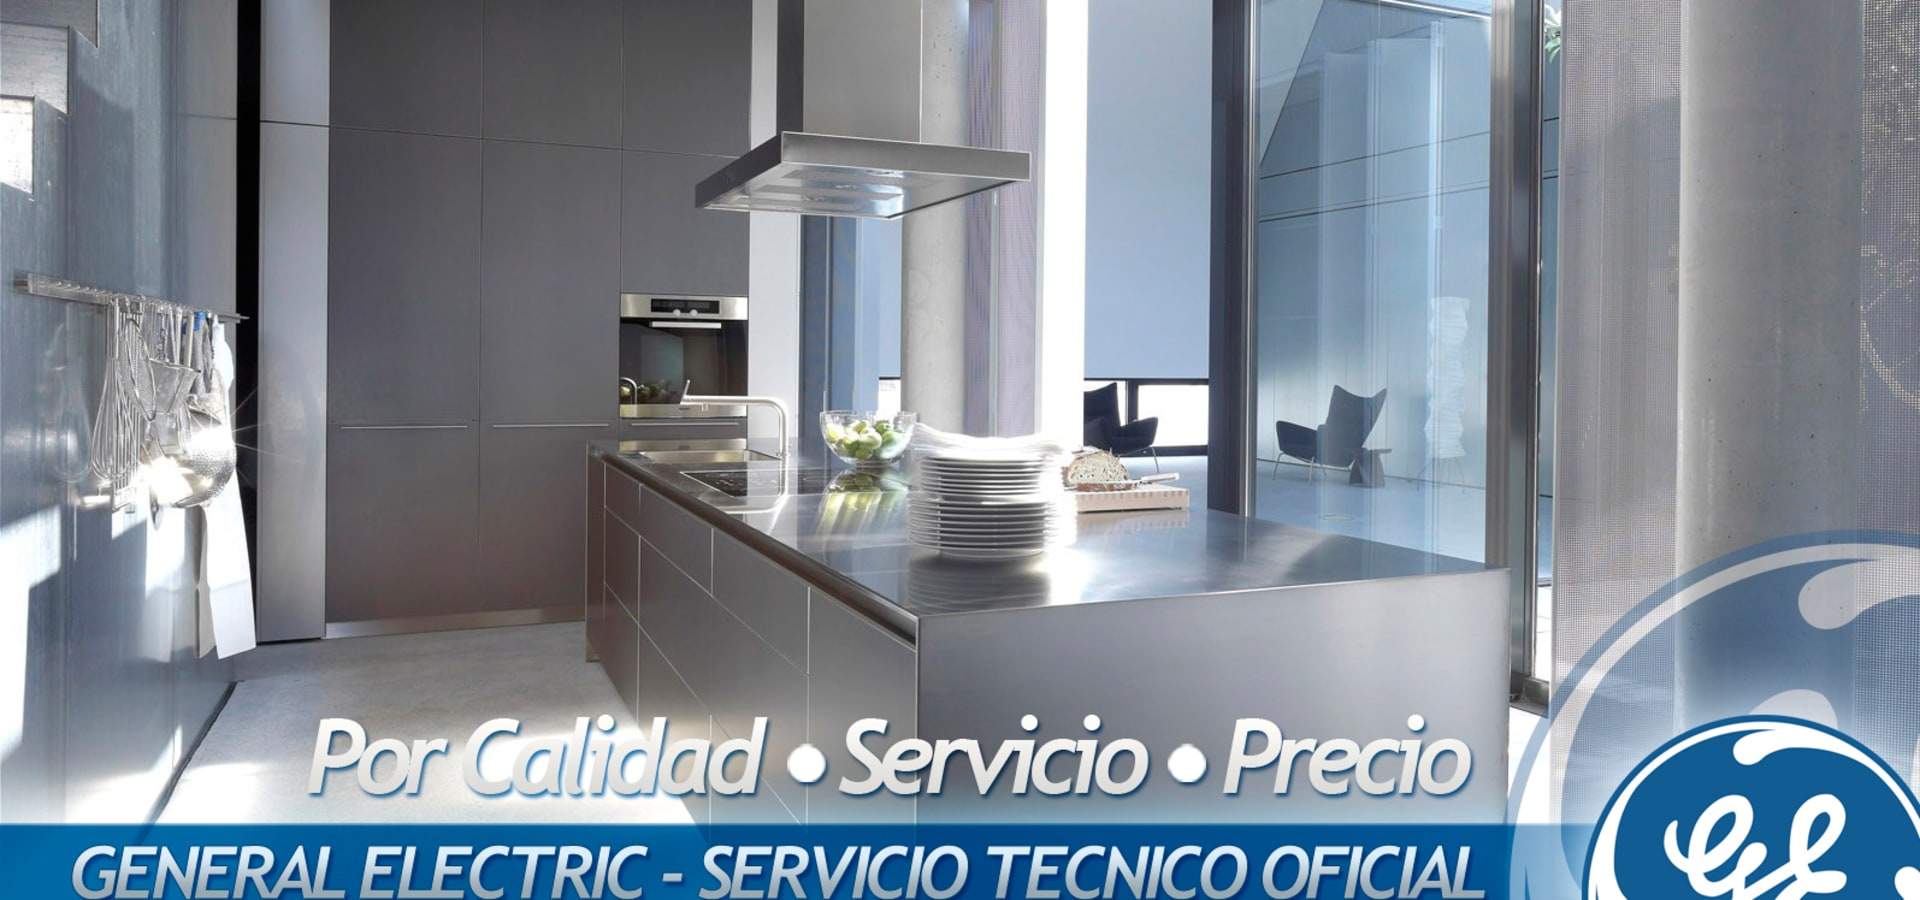 Servicio t cnico oficial general electric by general - Servicio tecnico general electric ...